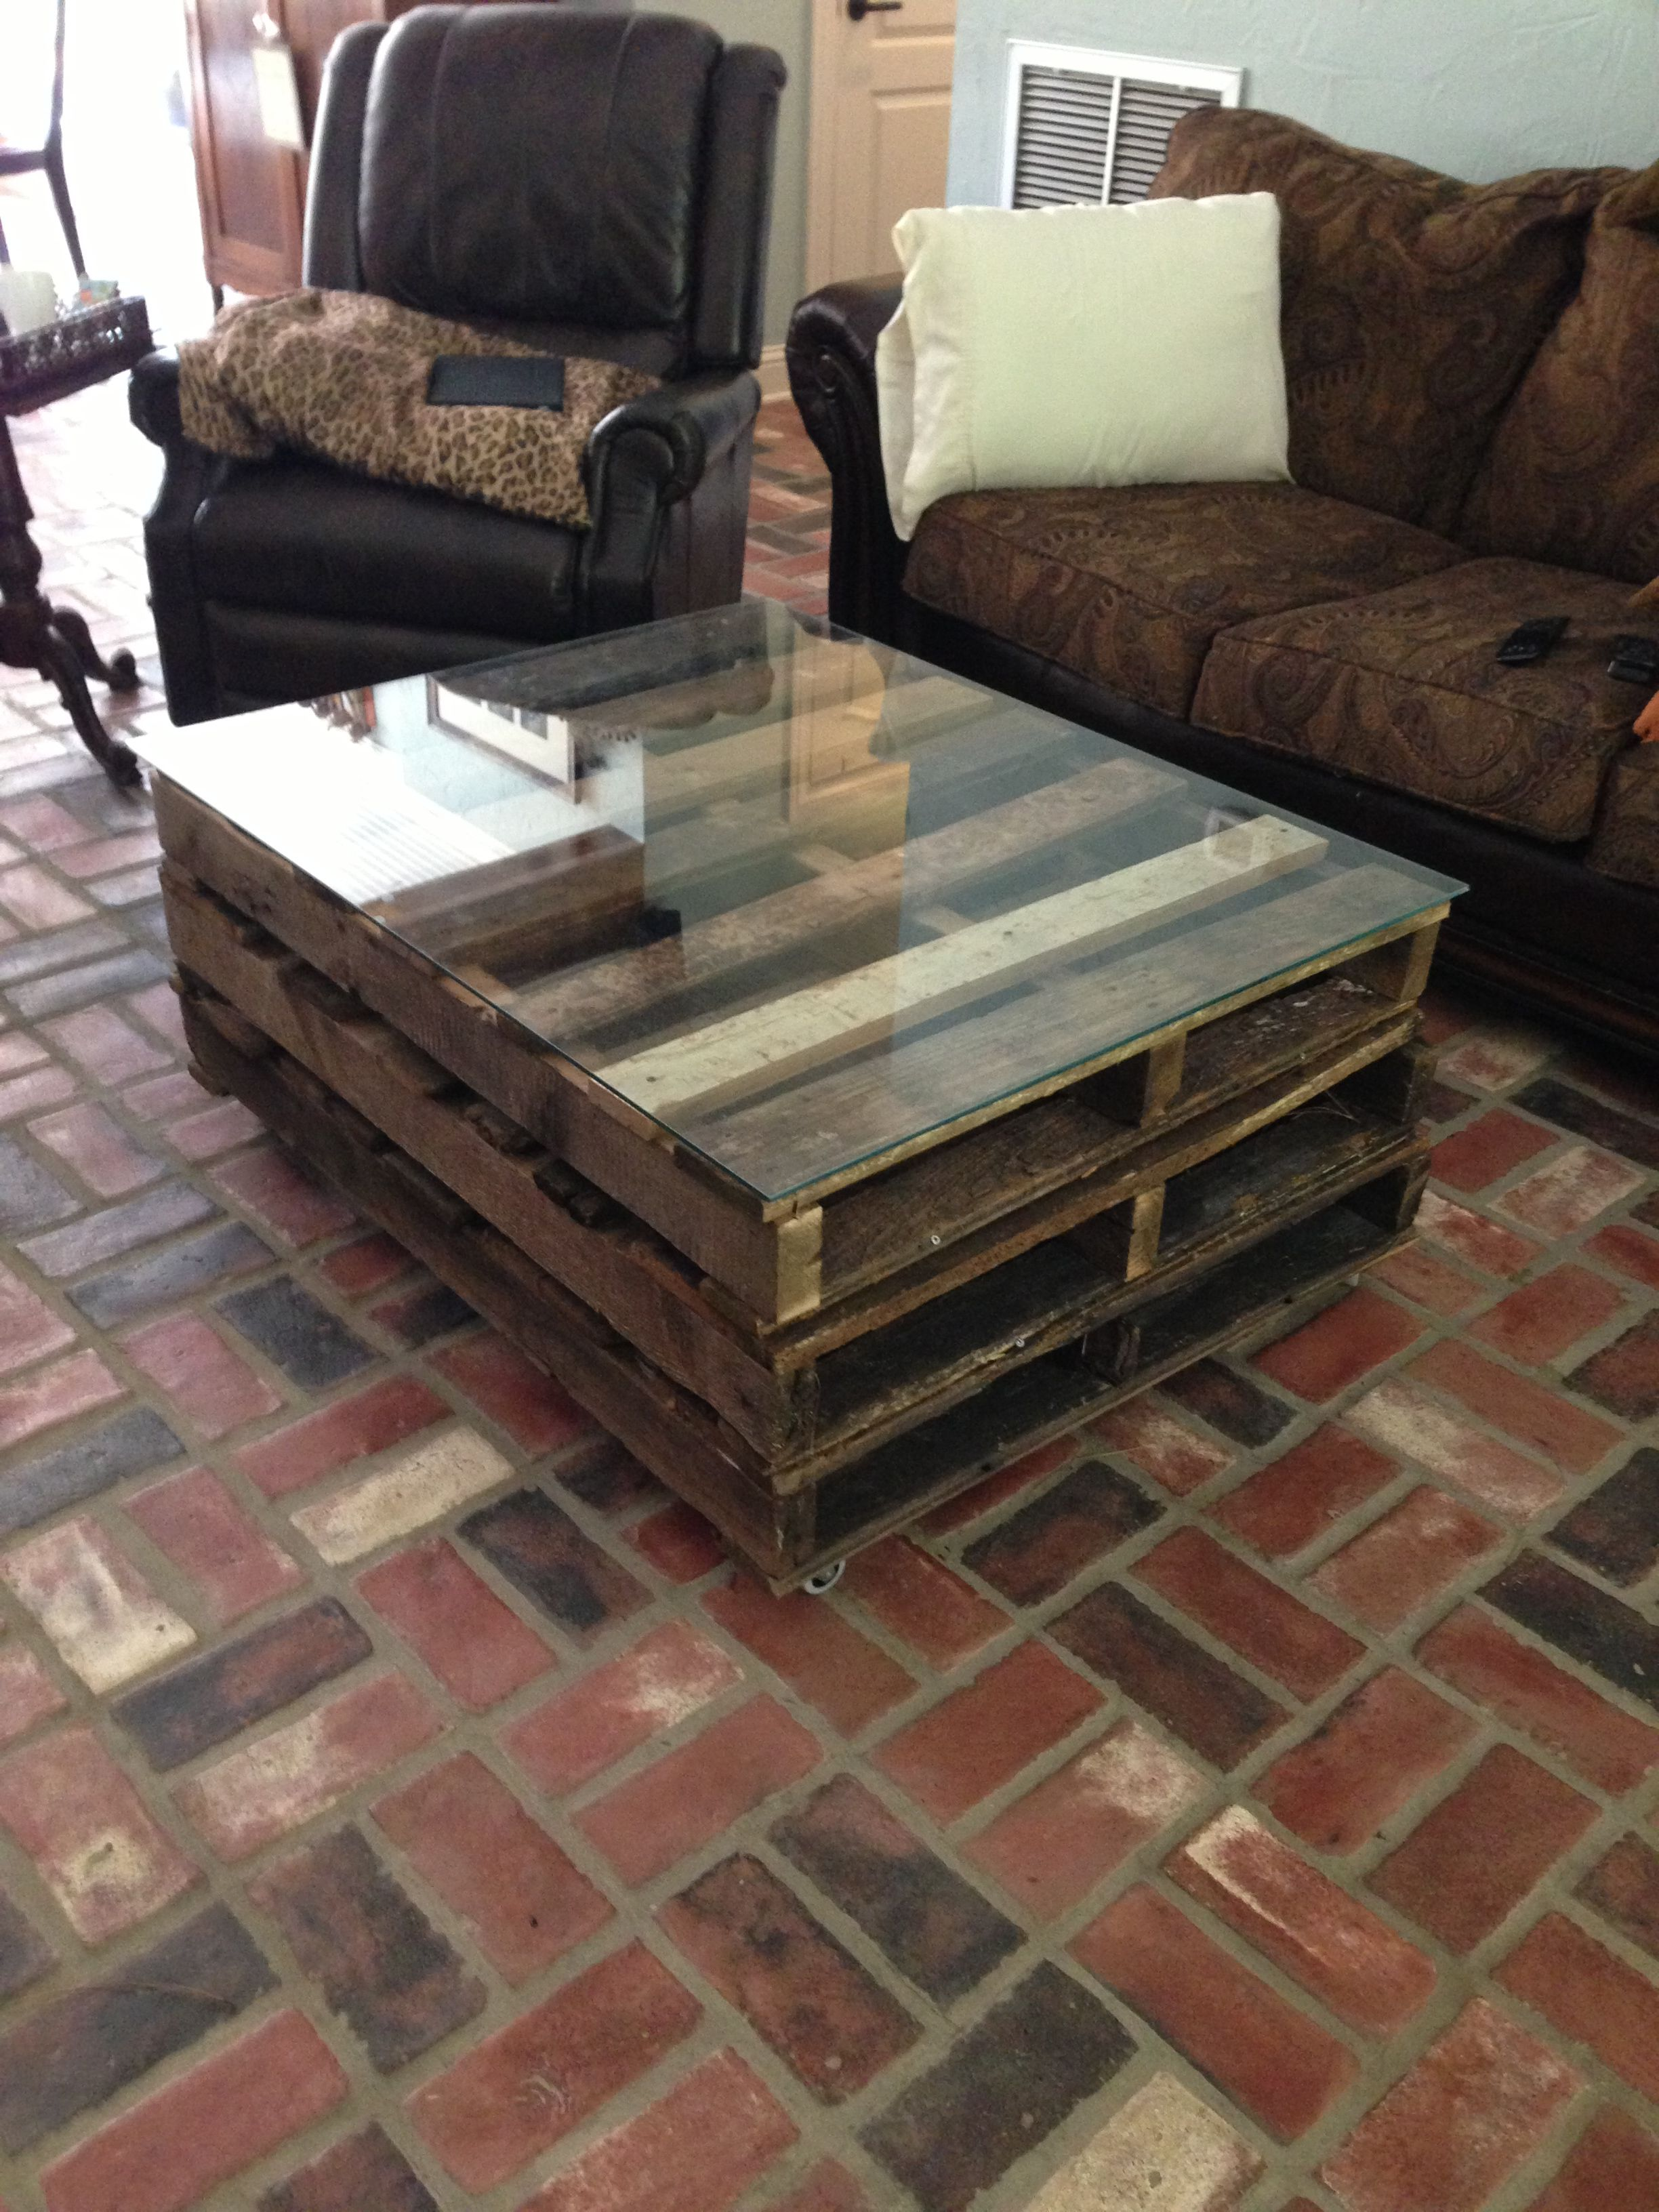 Homemade Coffee Table Made Out Of Pallets Aside From The Custom